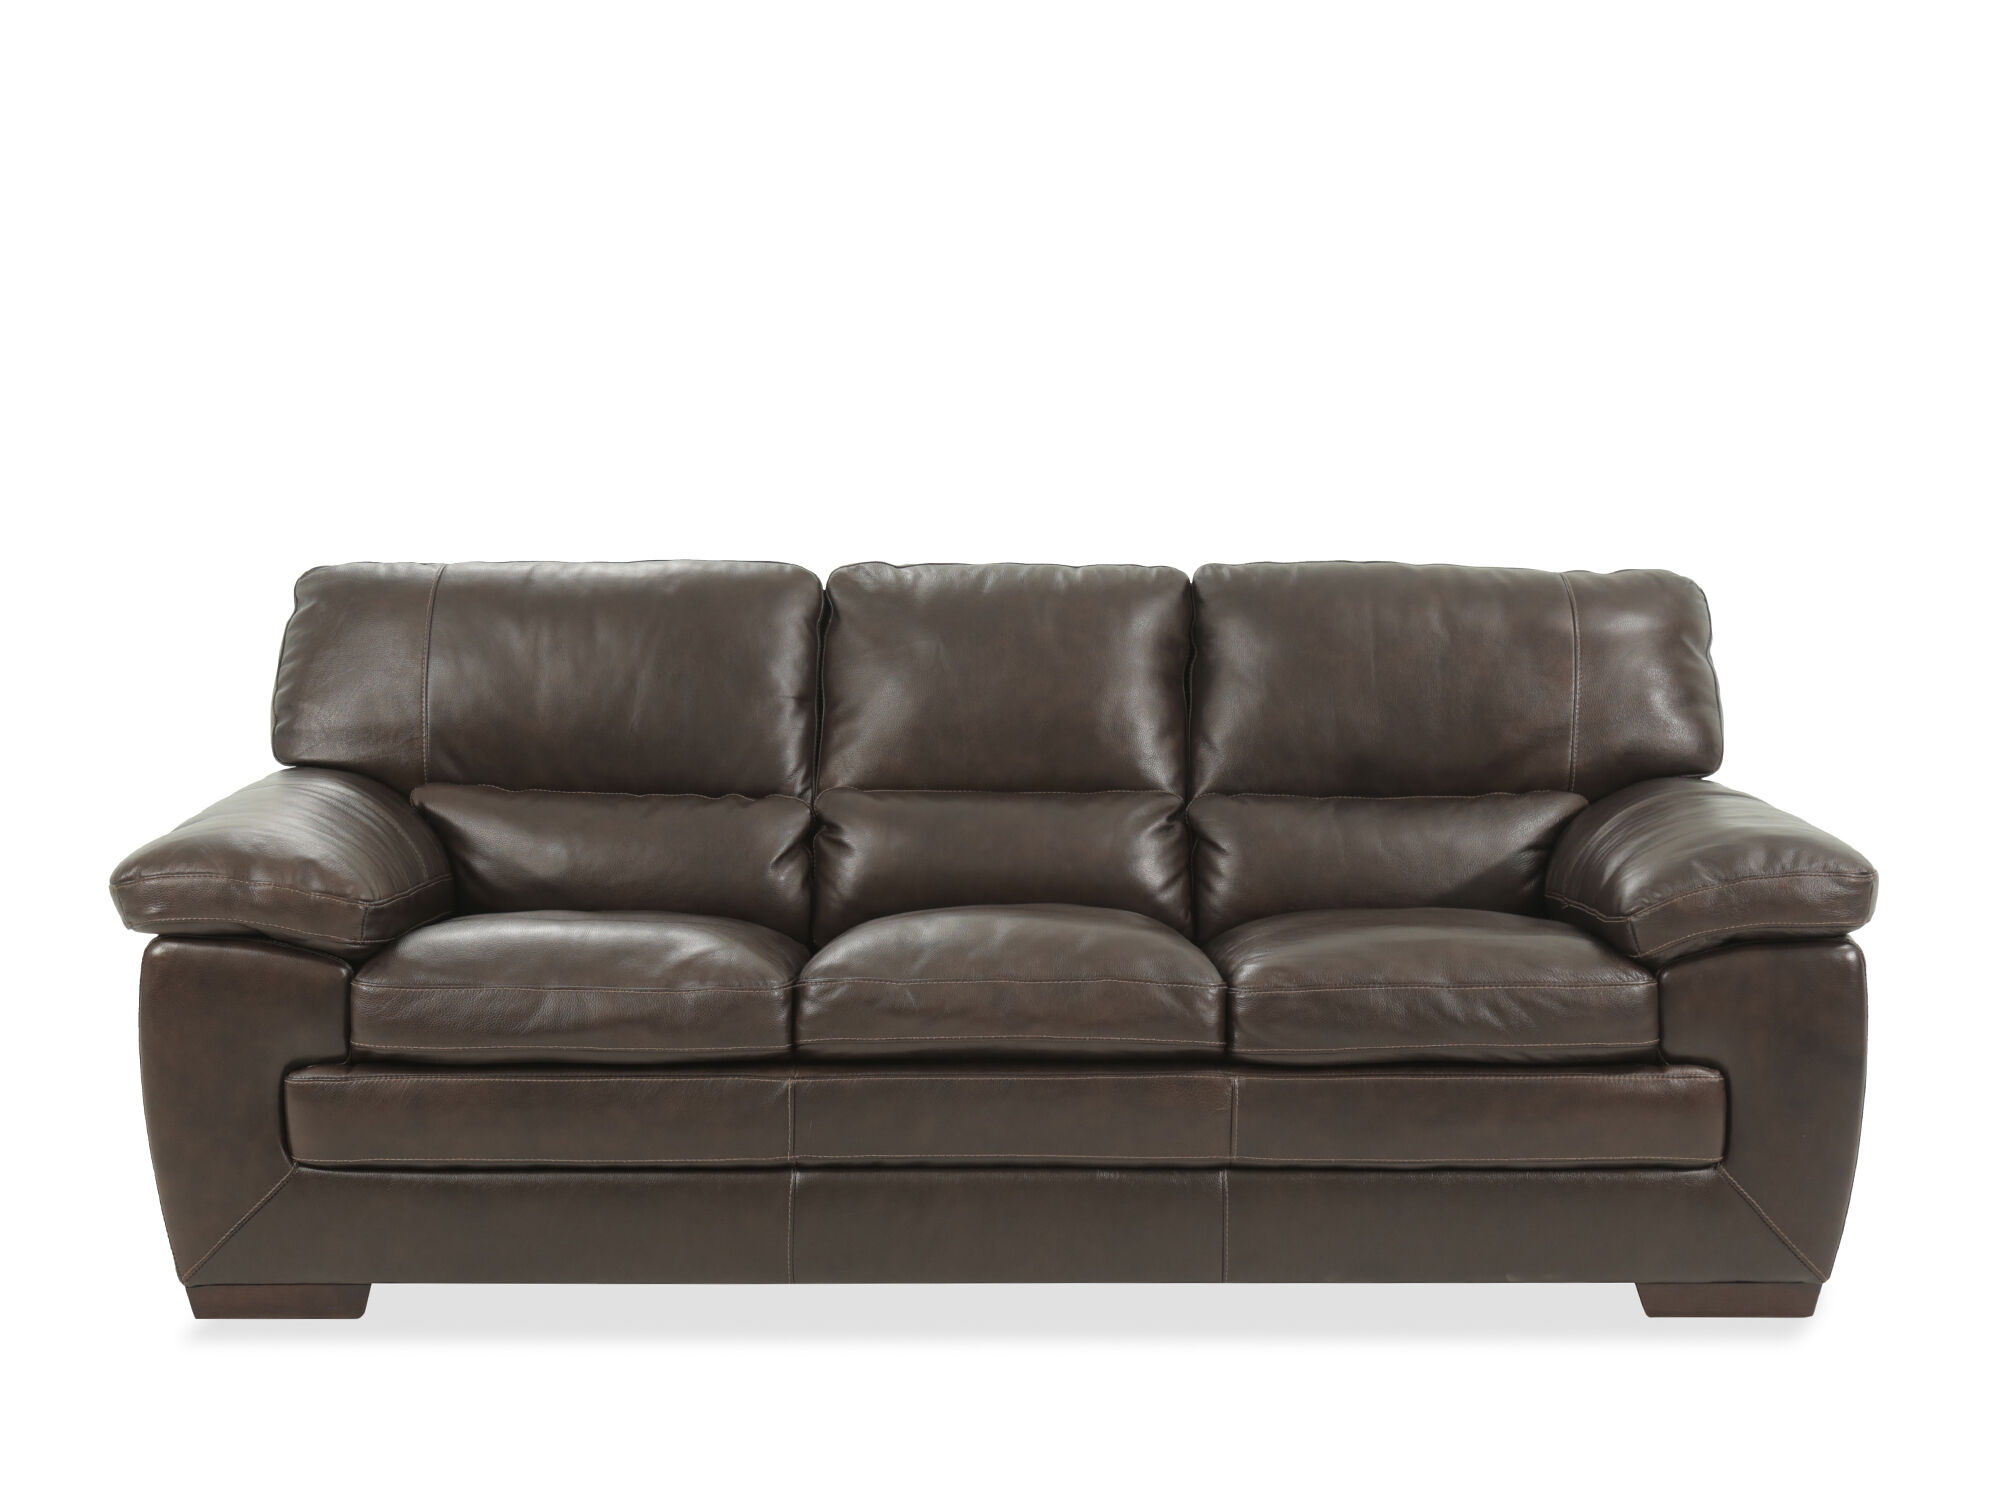 Big Sofa San Juan Living Room Furniture Stores Mathis Brothers